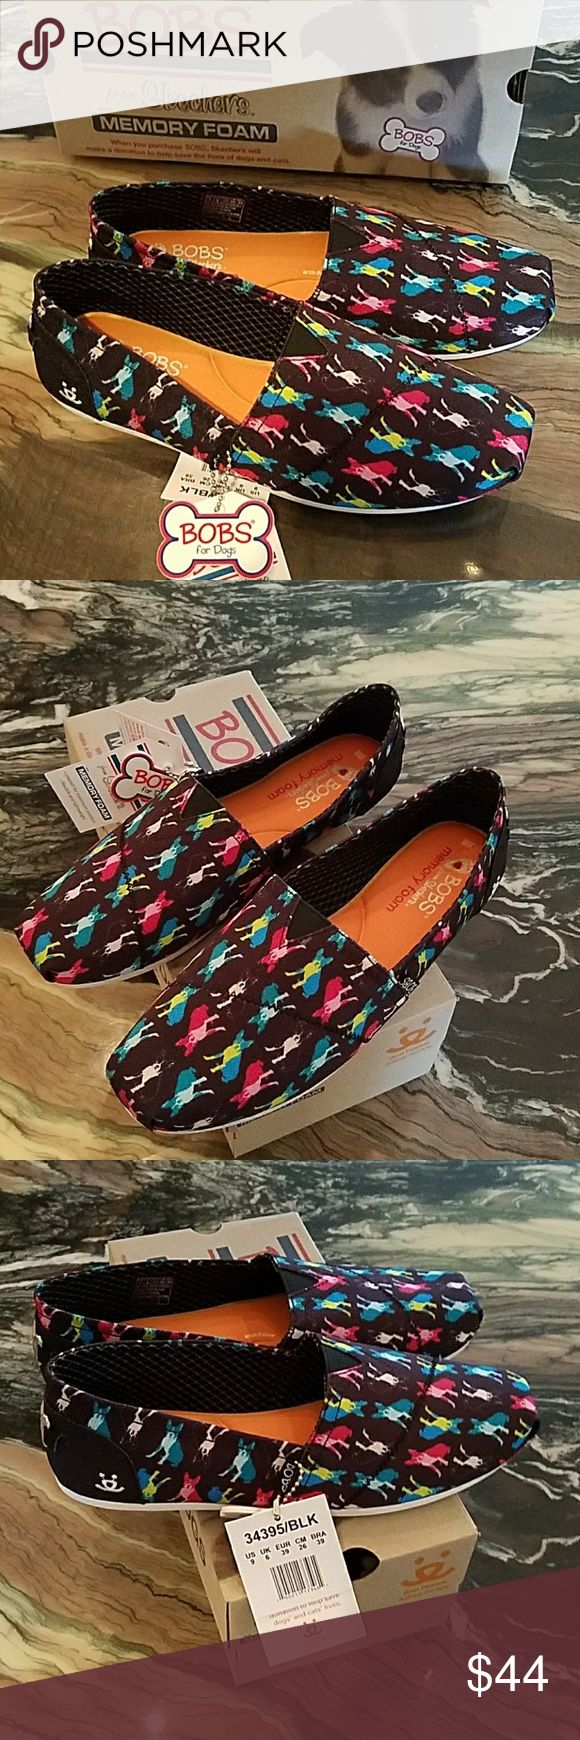 Bob's Memory Foam Double Vision Animal Loafers Skechers Memory Foam Double Vision Shoes  Memory Foam padded footbed  Rubber sole  Black background with vibrant colored dogs and cats on the fabric   Classic style with Skechers Comfort! Skechers Shoes Flats & Loafers